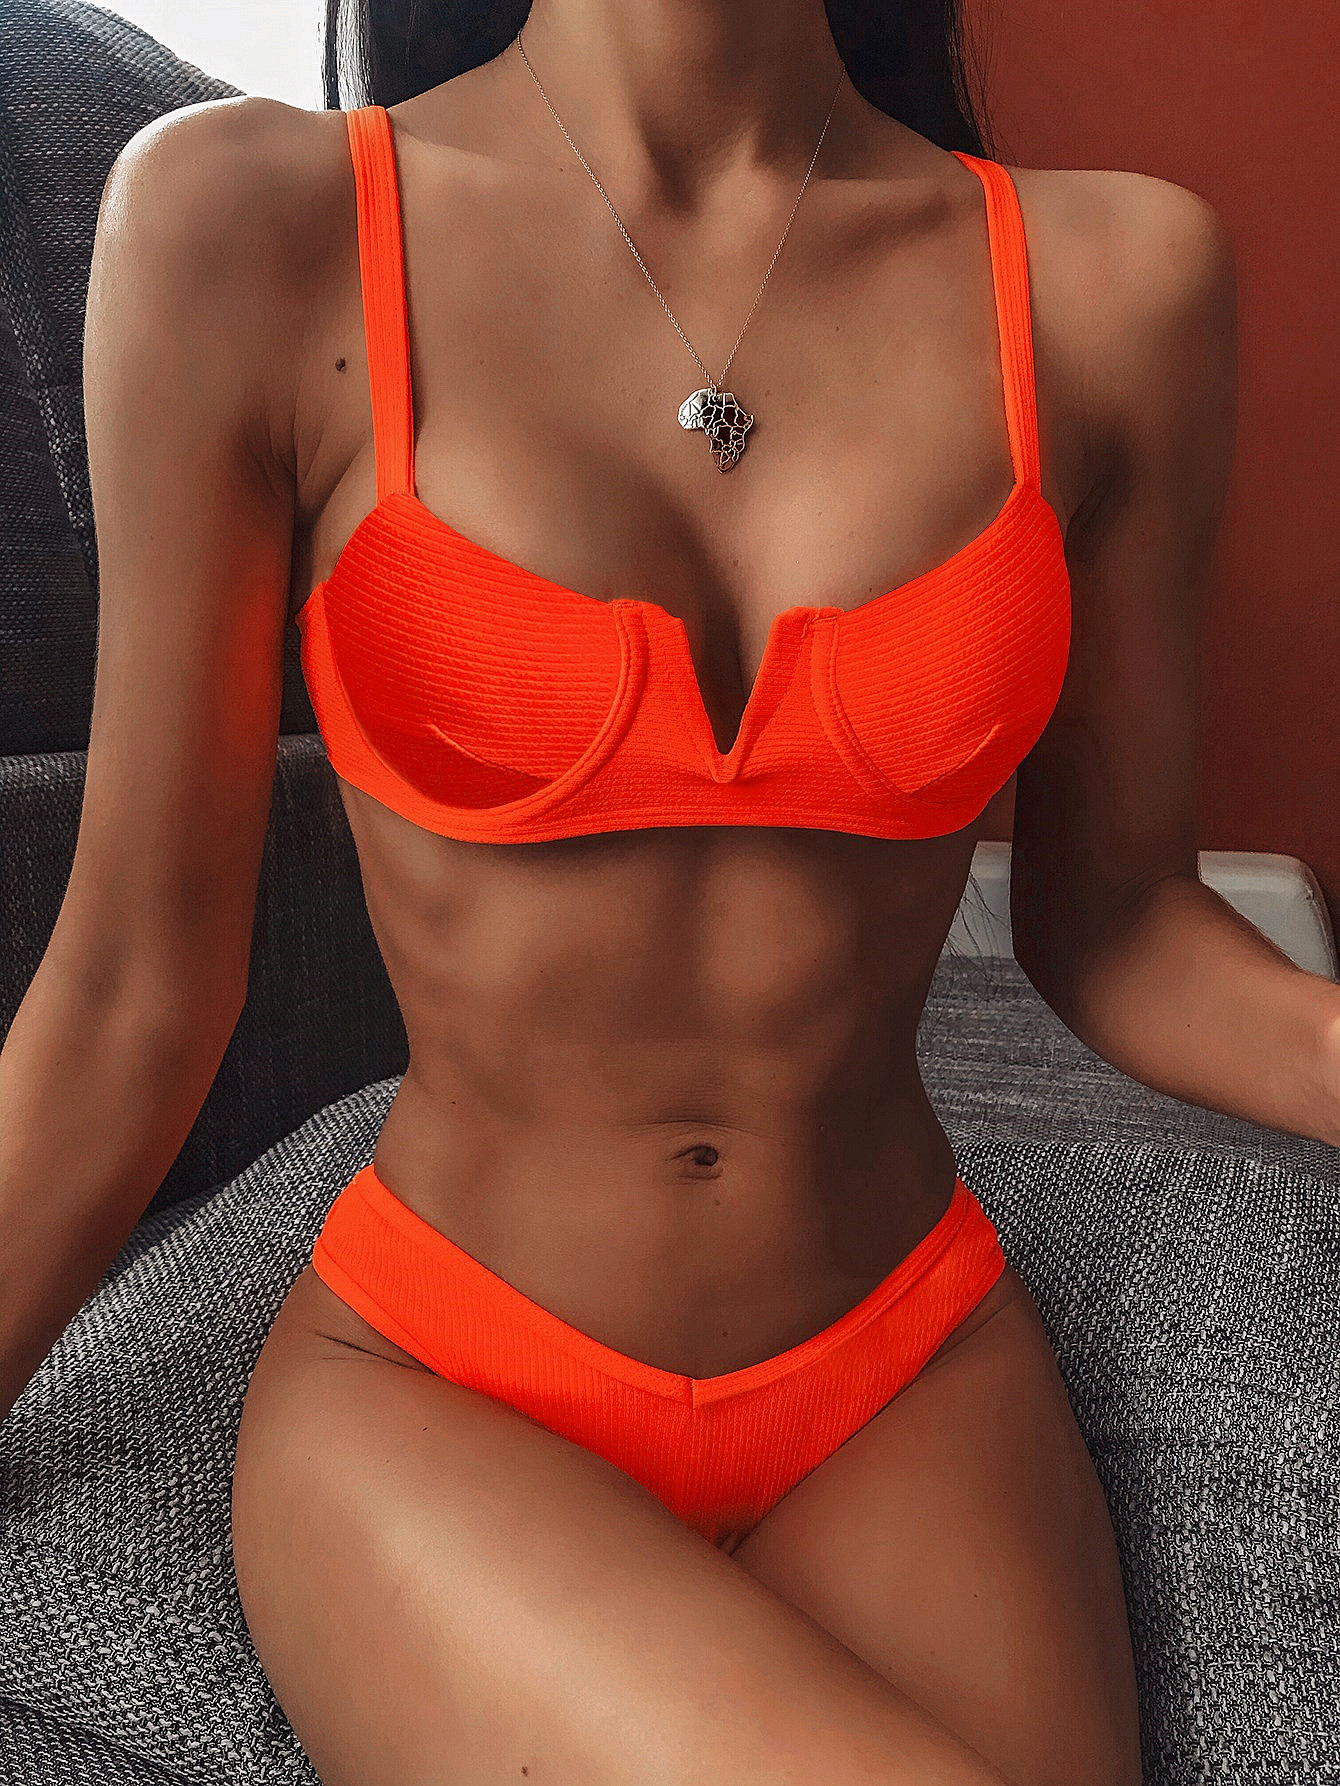 V-neck Push Up Bikini High Cut Ribbed Swimsuit Low Waist Strap Women Swimwear